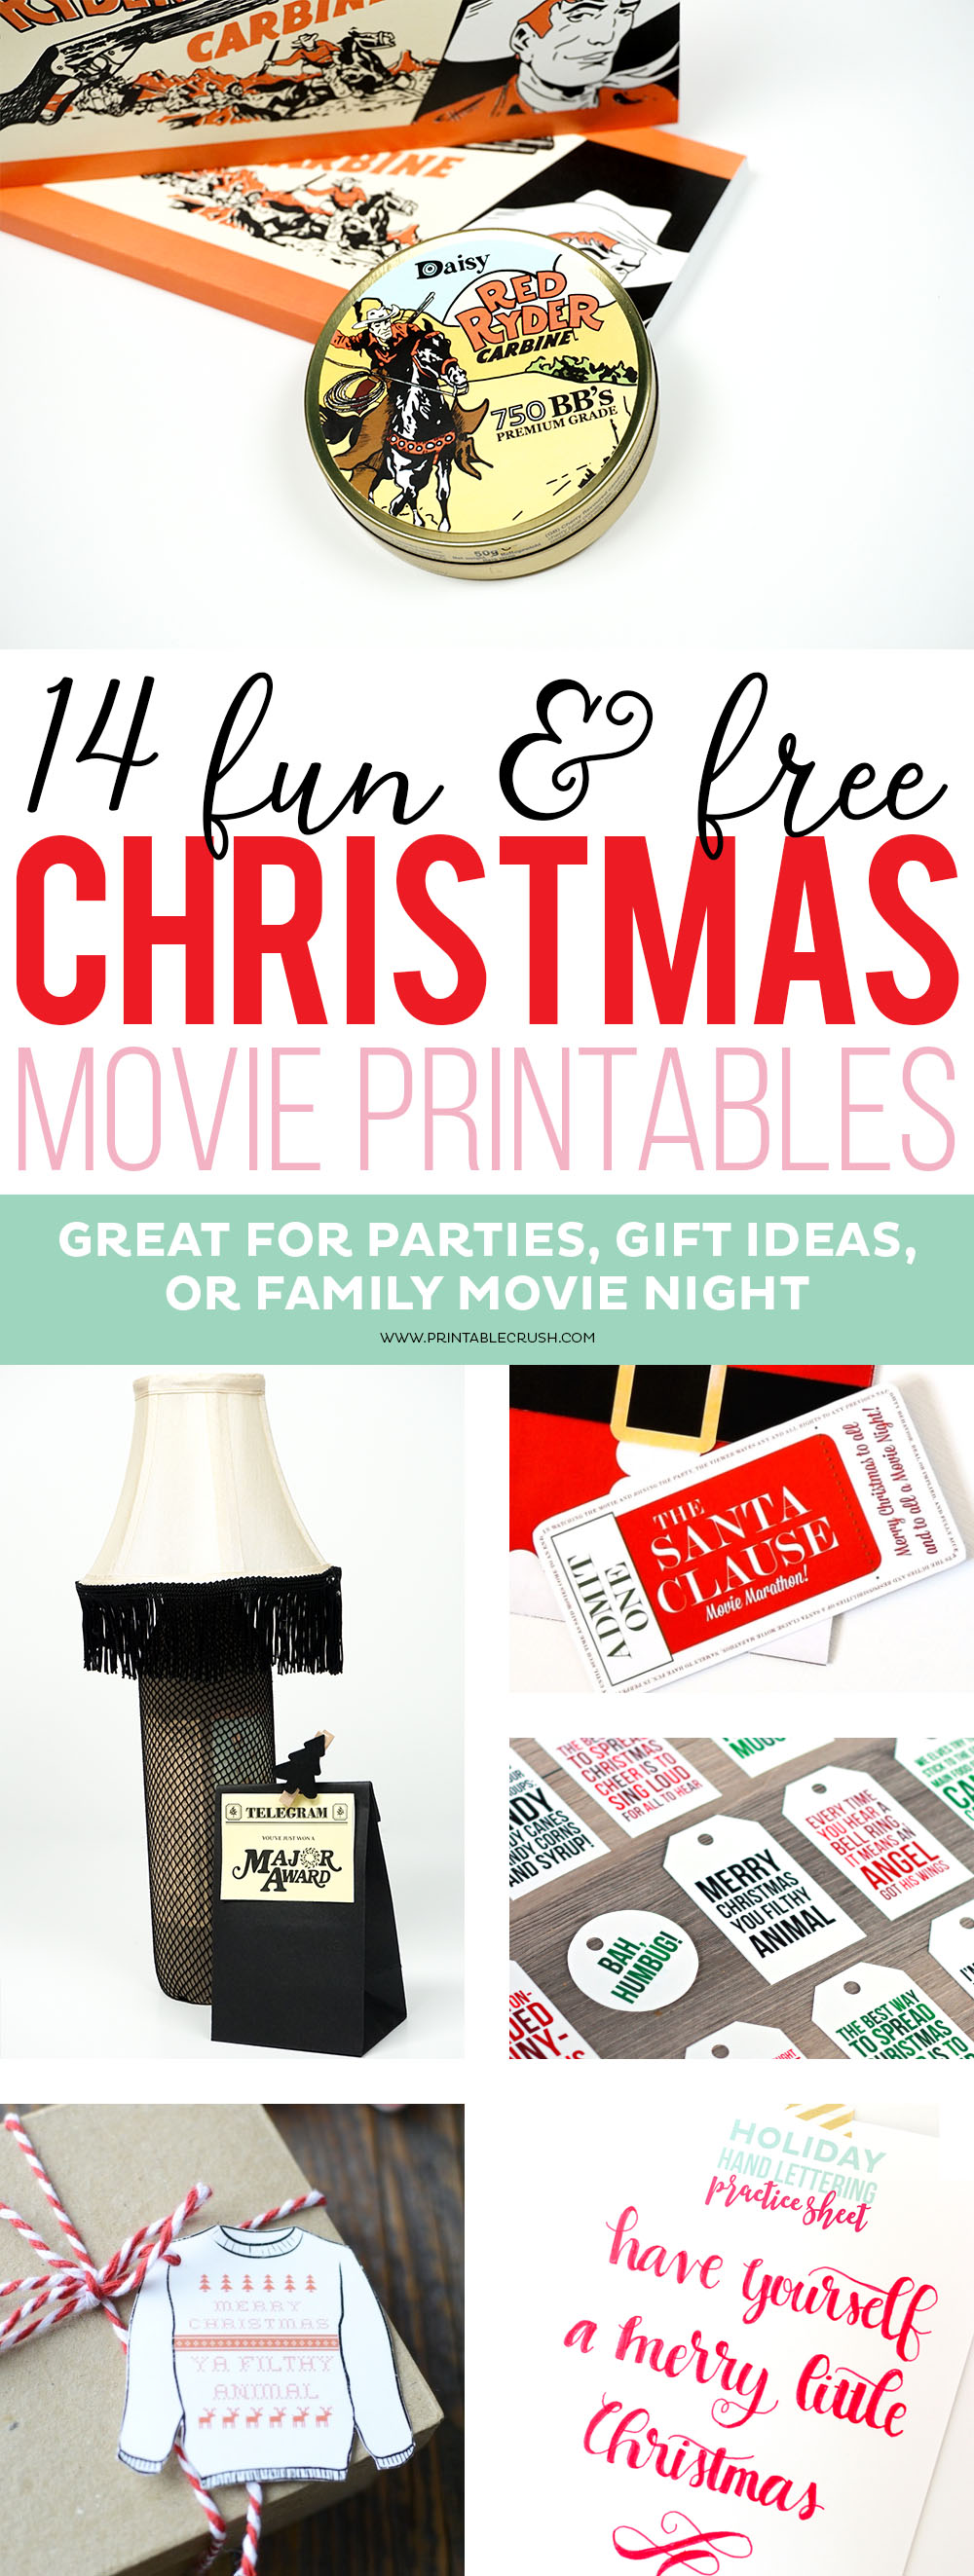 These FREE Christmas Movie Printables are great for parties, gift ideas, or family movie night! You'll find ideas for gift baskets, simple treats, or even full-blown parties!